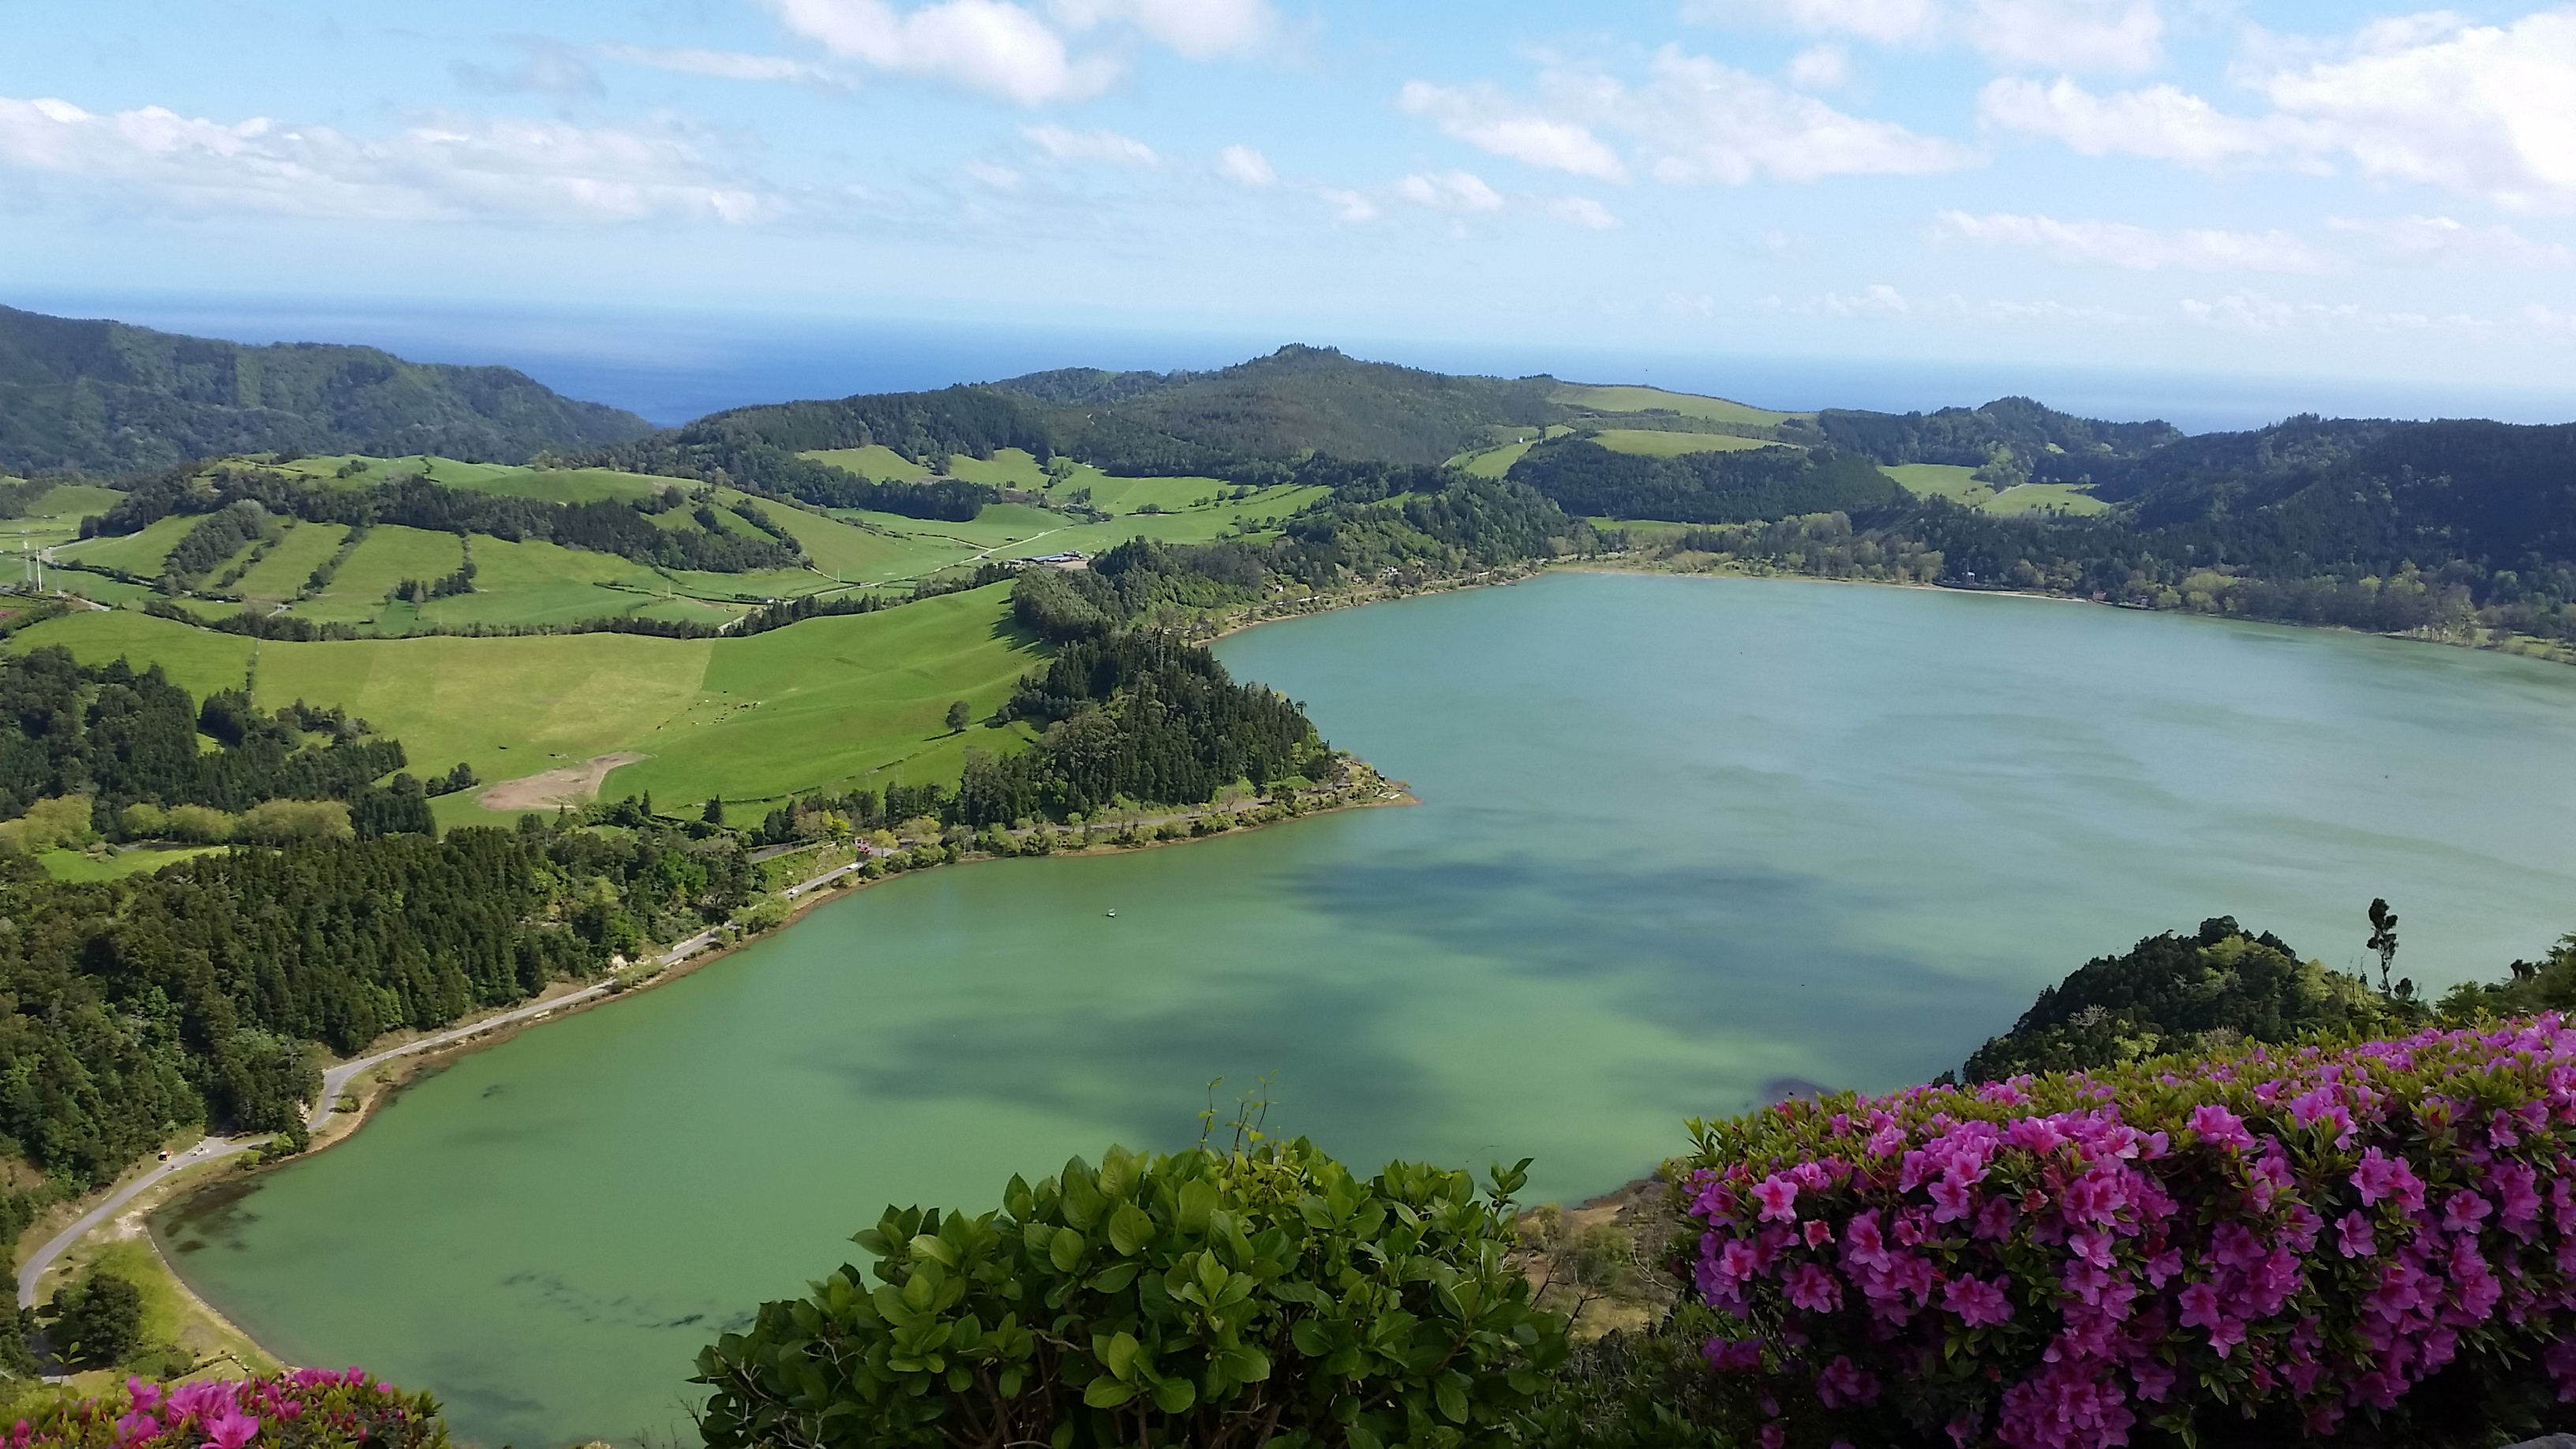 Private Tour # 5 - Furnas Lake & Hot Springs